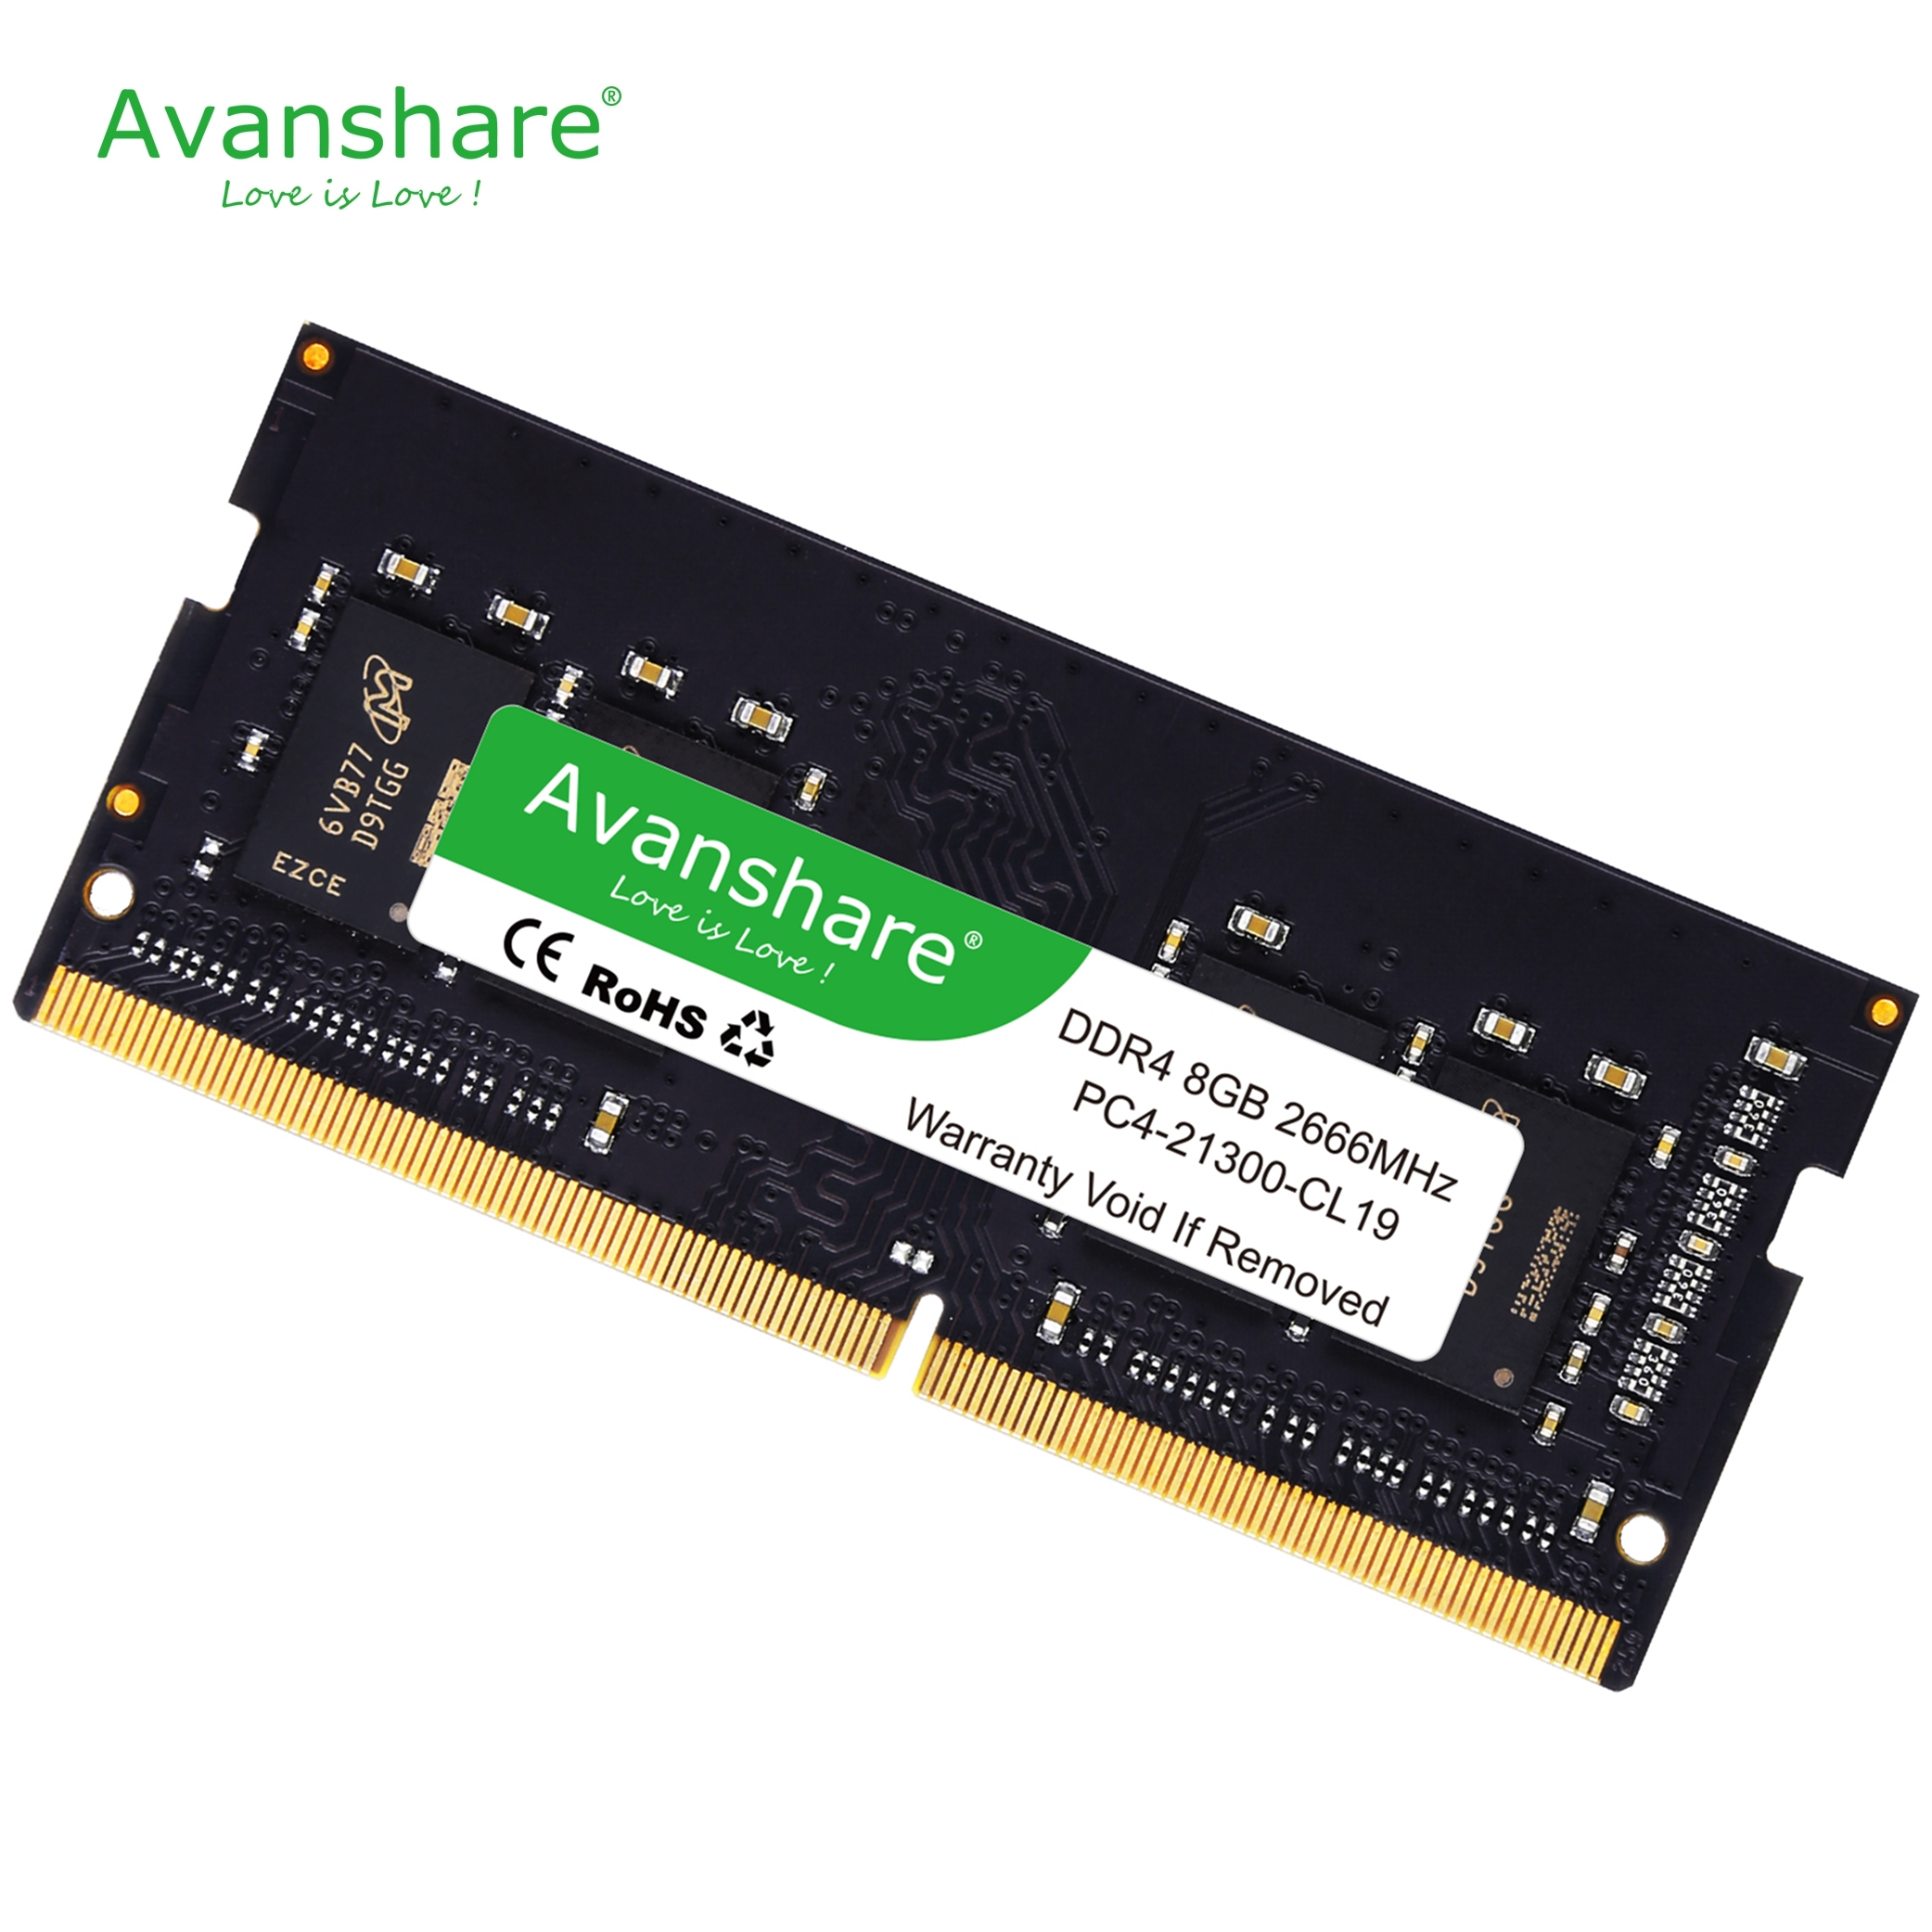 Avanshare <font><b>memoria</b></font> <font><b>ram</b></font> <font><b>ddr4</b></font> 4GB 8gb <font><b>16GB</b></font> 2666MHz 2400MHz <font><b>RAM</b></font> for Laptop <font><b>Notebook</b></font> <font><b>Memoria</b></font> <font><b>Ram</b></font> <font><b>DDR4</b></font> free shipping by Ali express image